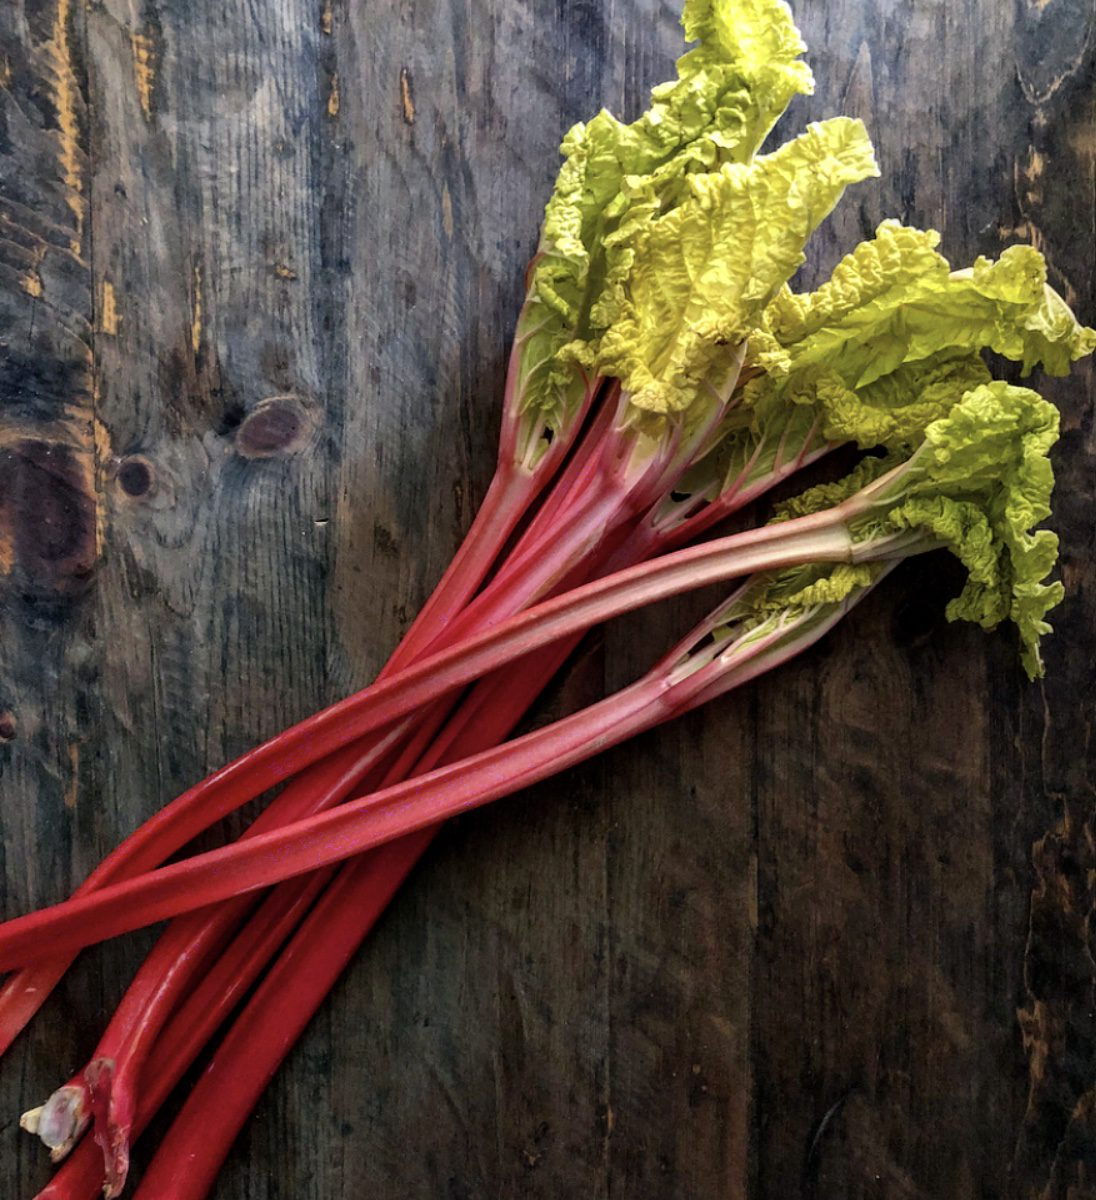 Celebrate Springtime with Rhubarb!